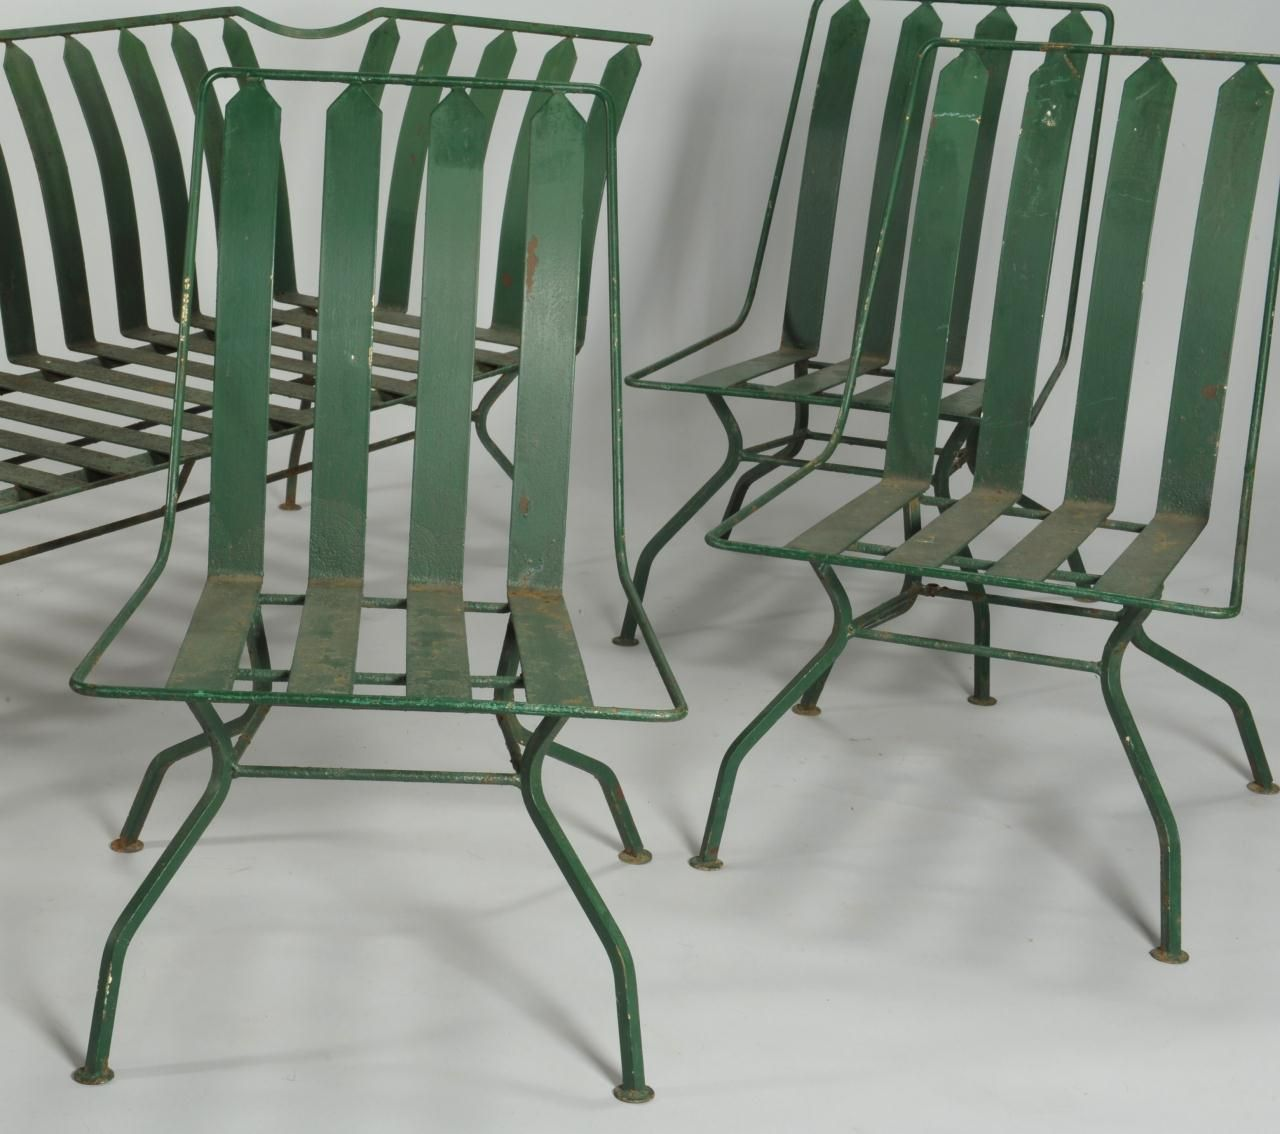 Art Deco Outdoor Furniture. Lot 589 French Art Deco Patio Furniture Settee  U0026amp 3 Chairs